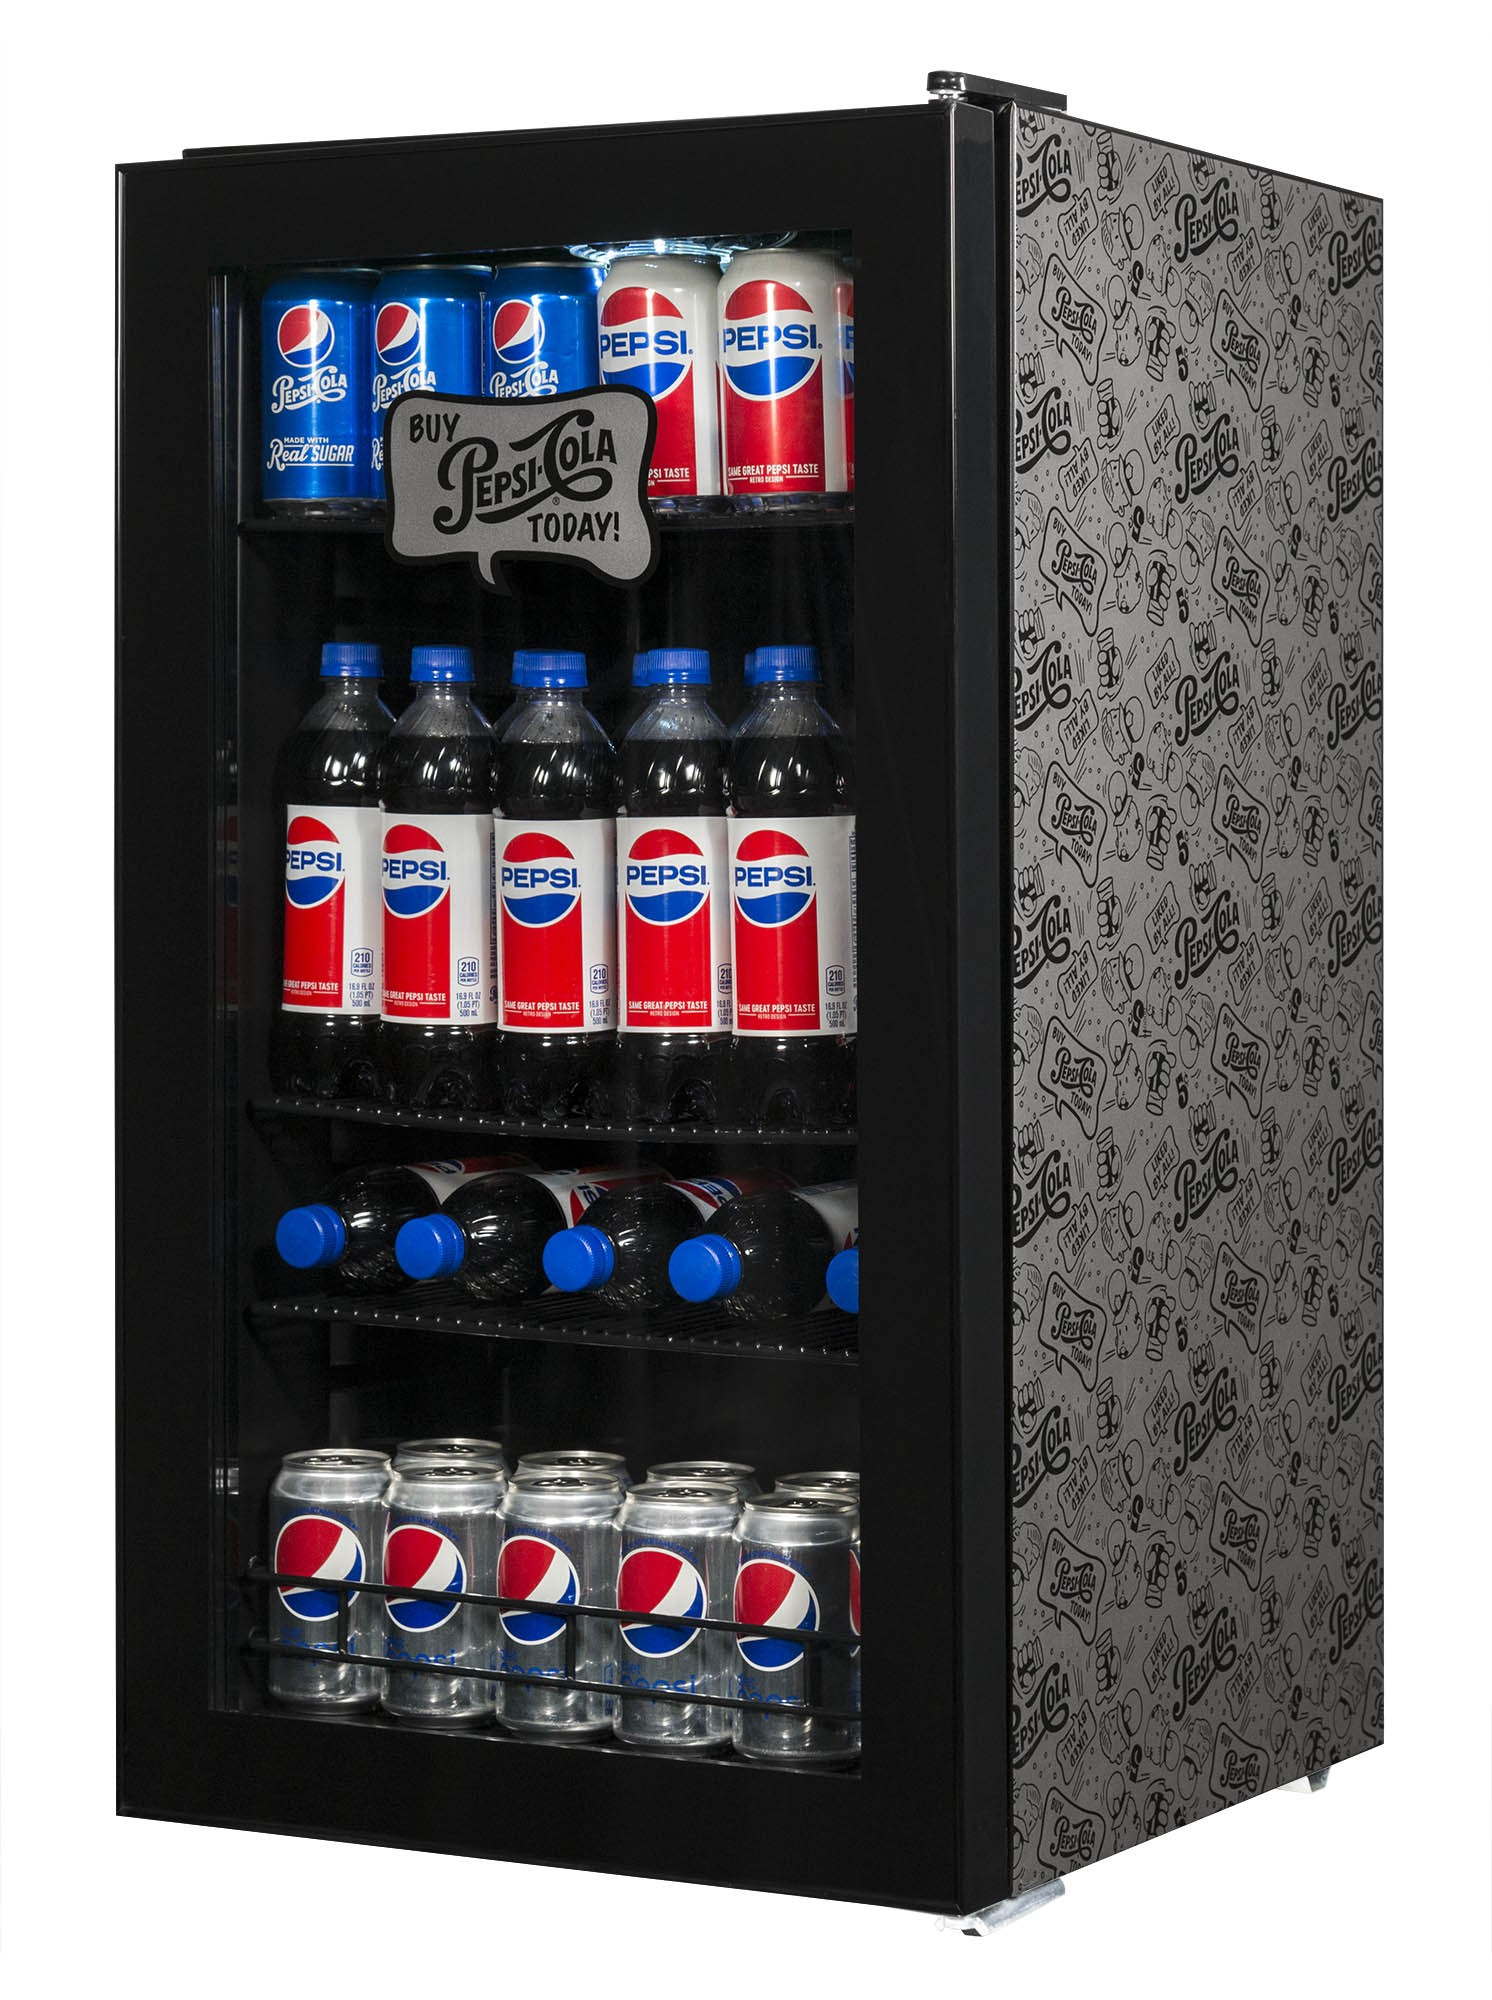 NewAir 126-Can Beverage Cooler | AB-1200BP